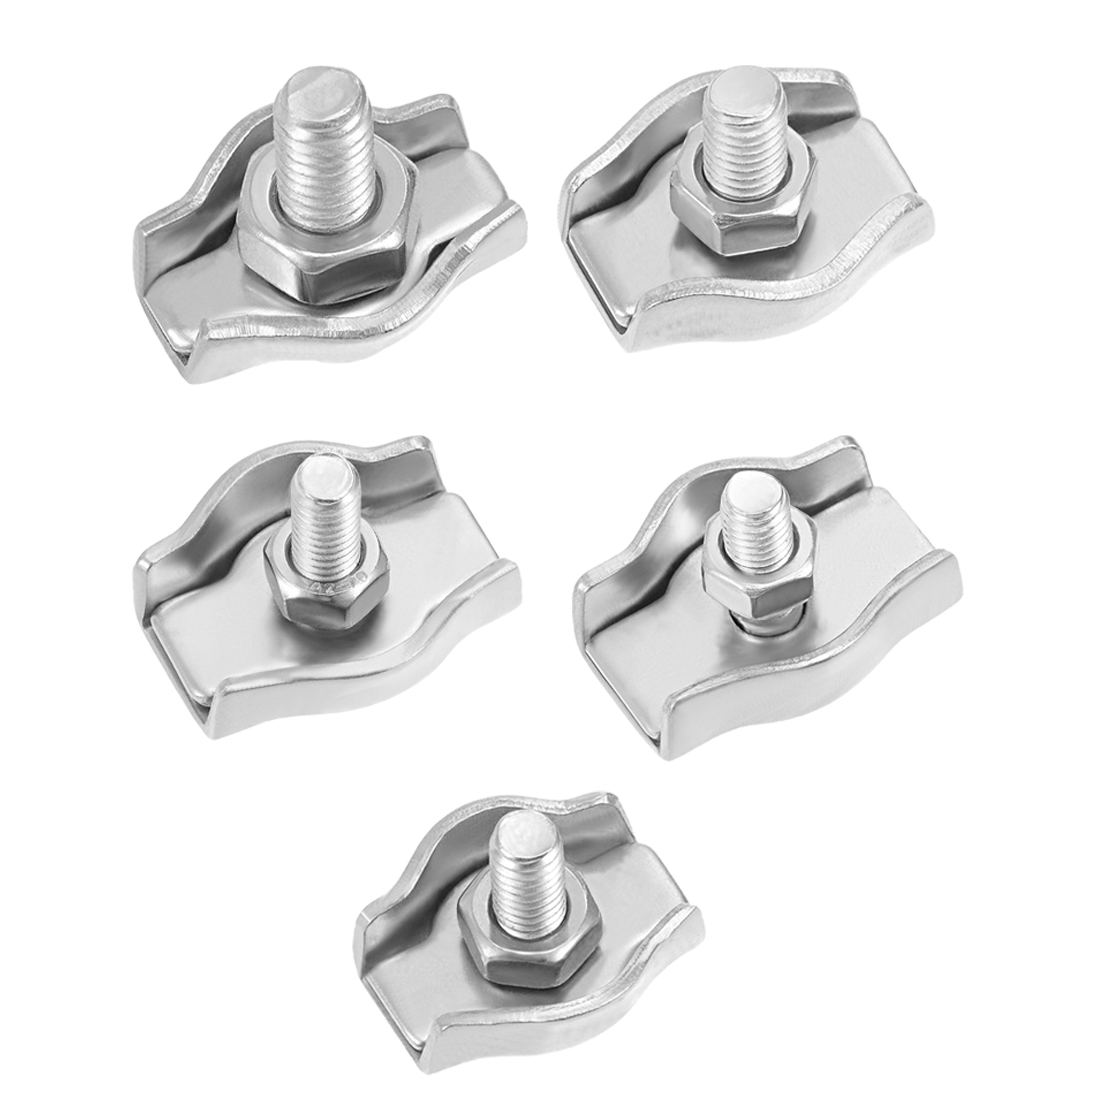 Uxcell 4-20pcs 304 Stainless Steel Single Wire Rope Clip Cable Clamp Suit For 1mm-1.5mm 1.5-2mm 2-3mm 3-4mm 4-5mm Rope